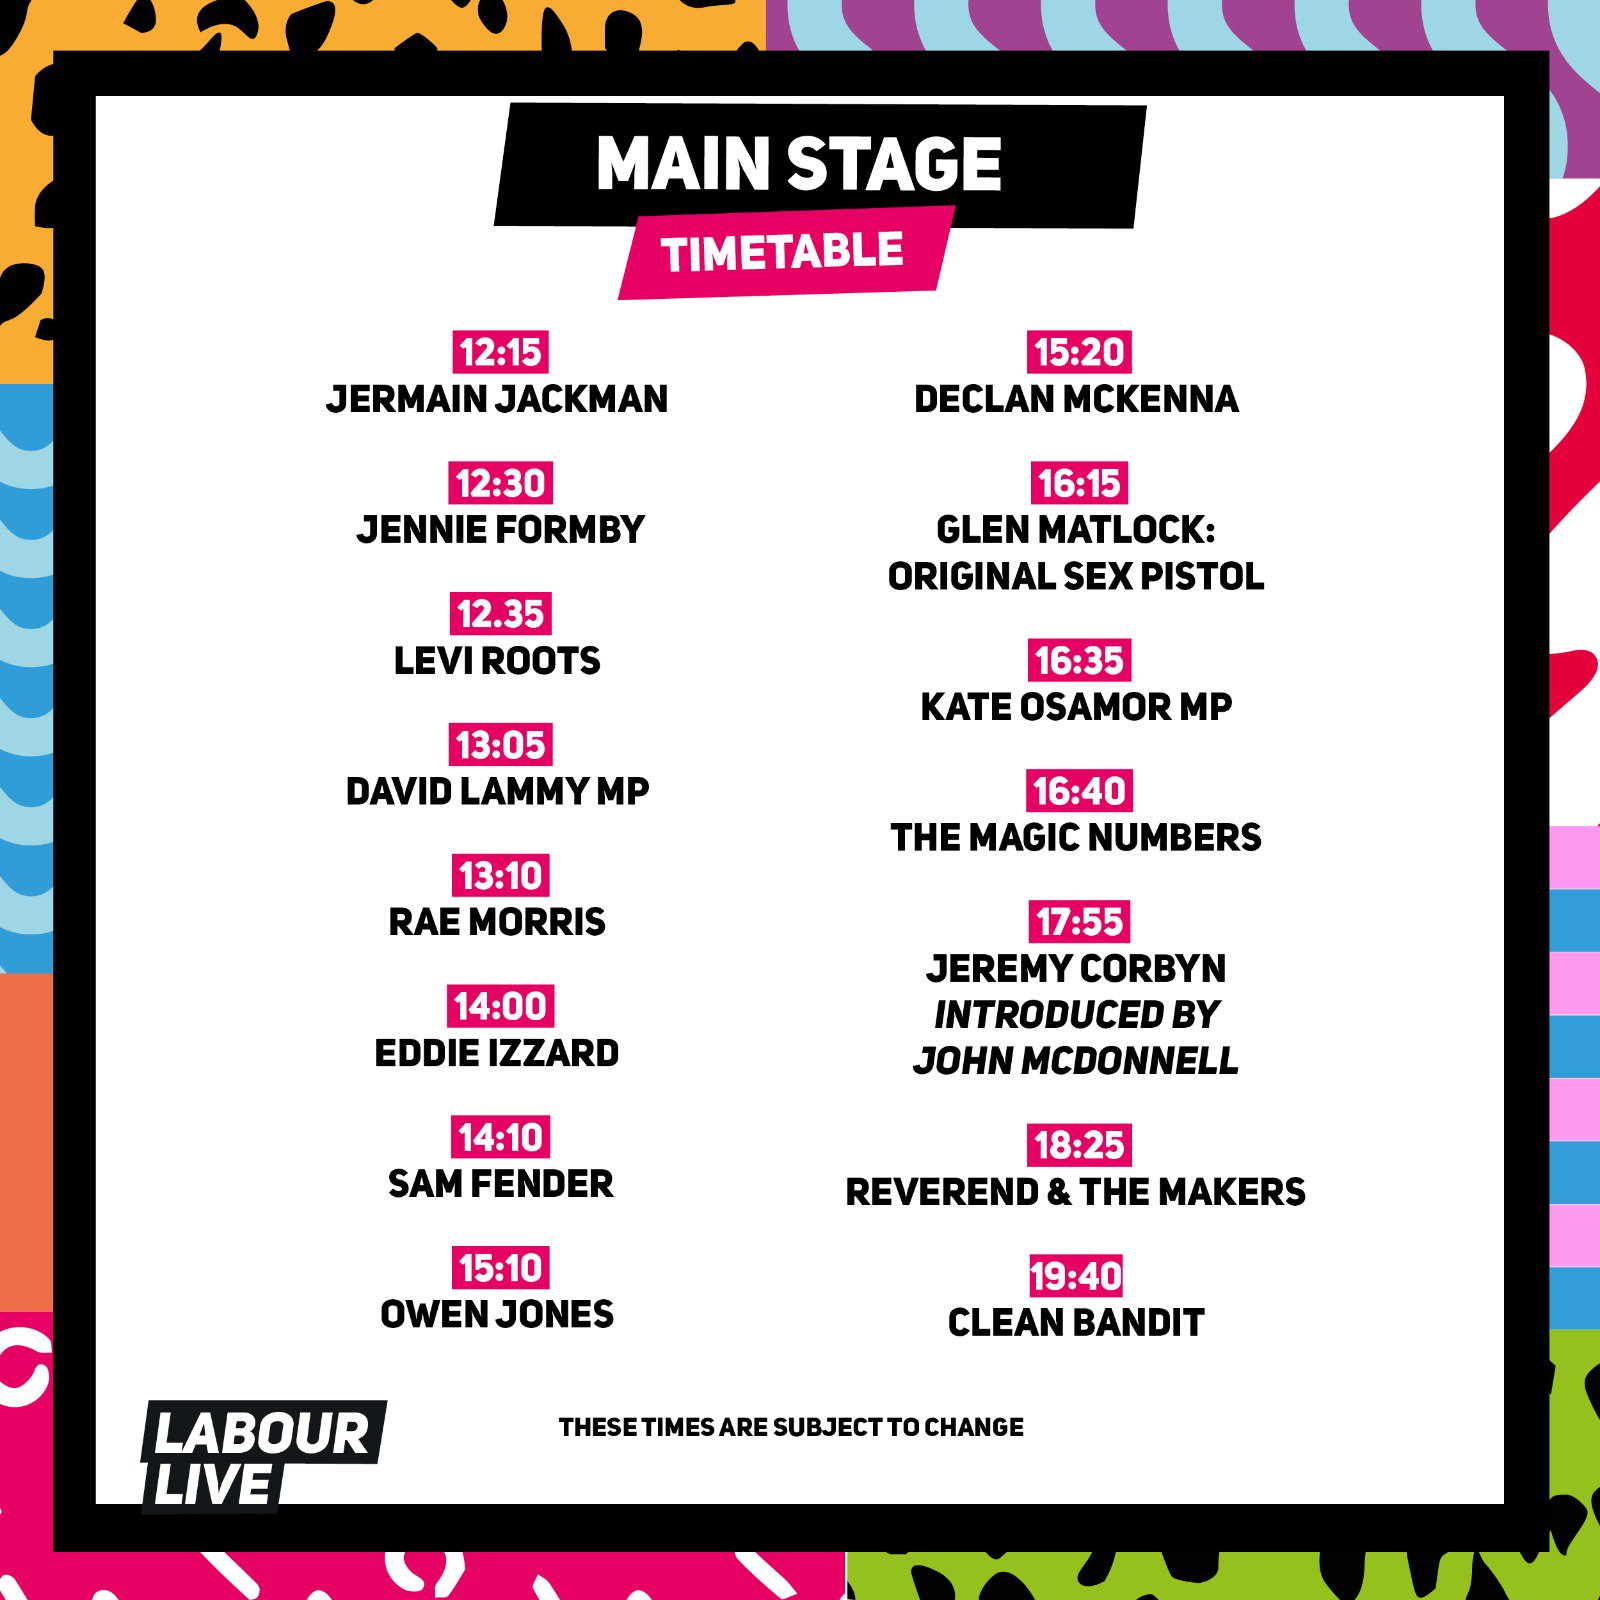 Ready for #LabourLive?  Doors open at midday! Here's what's going on today, stage by stage �� https://t.co/A4mUDcg5MN